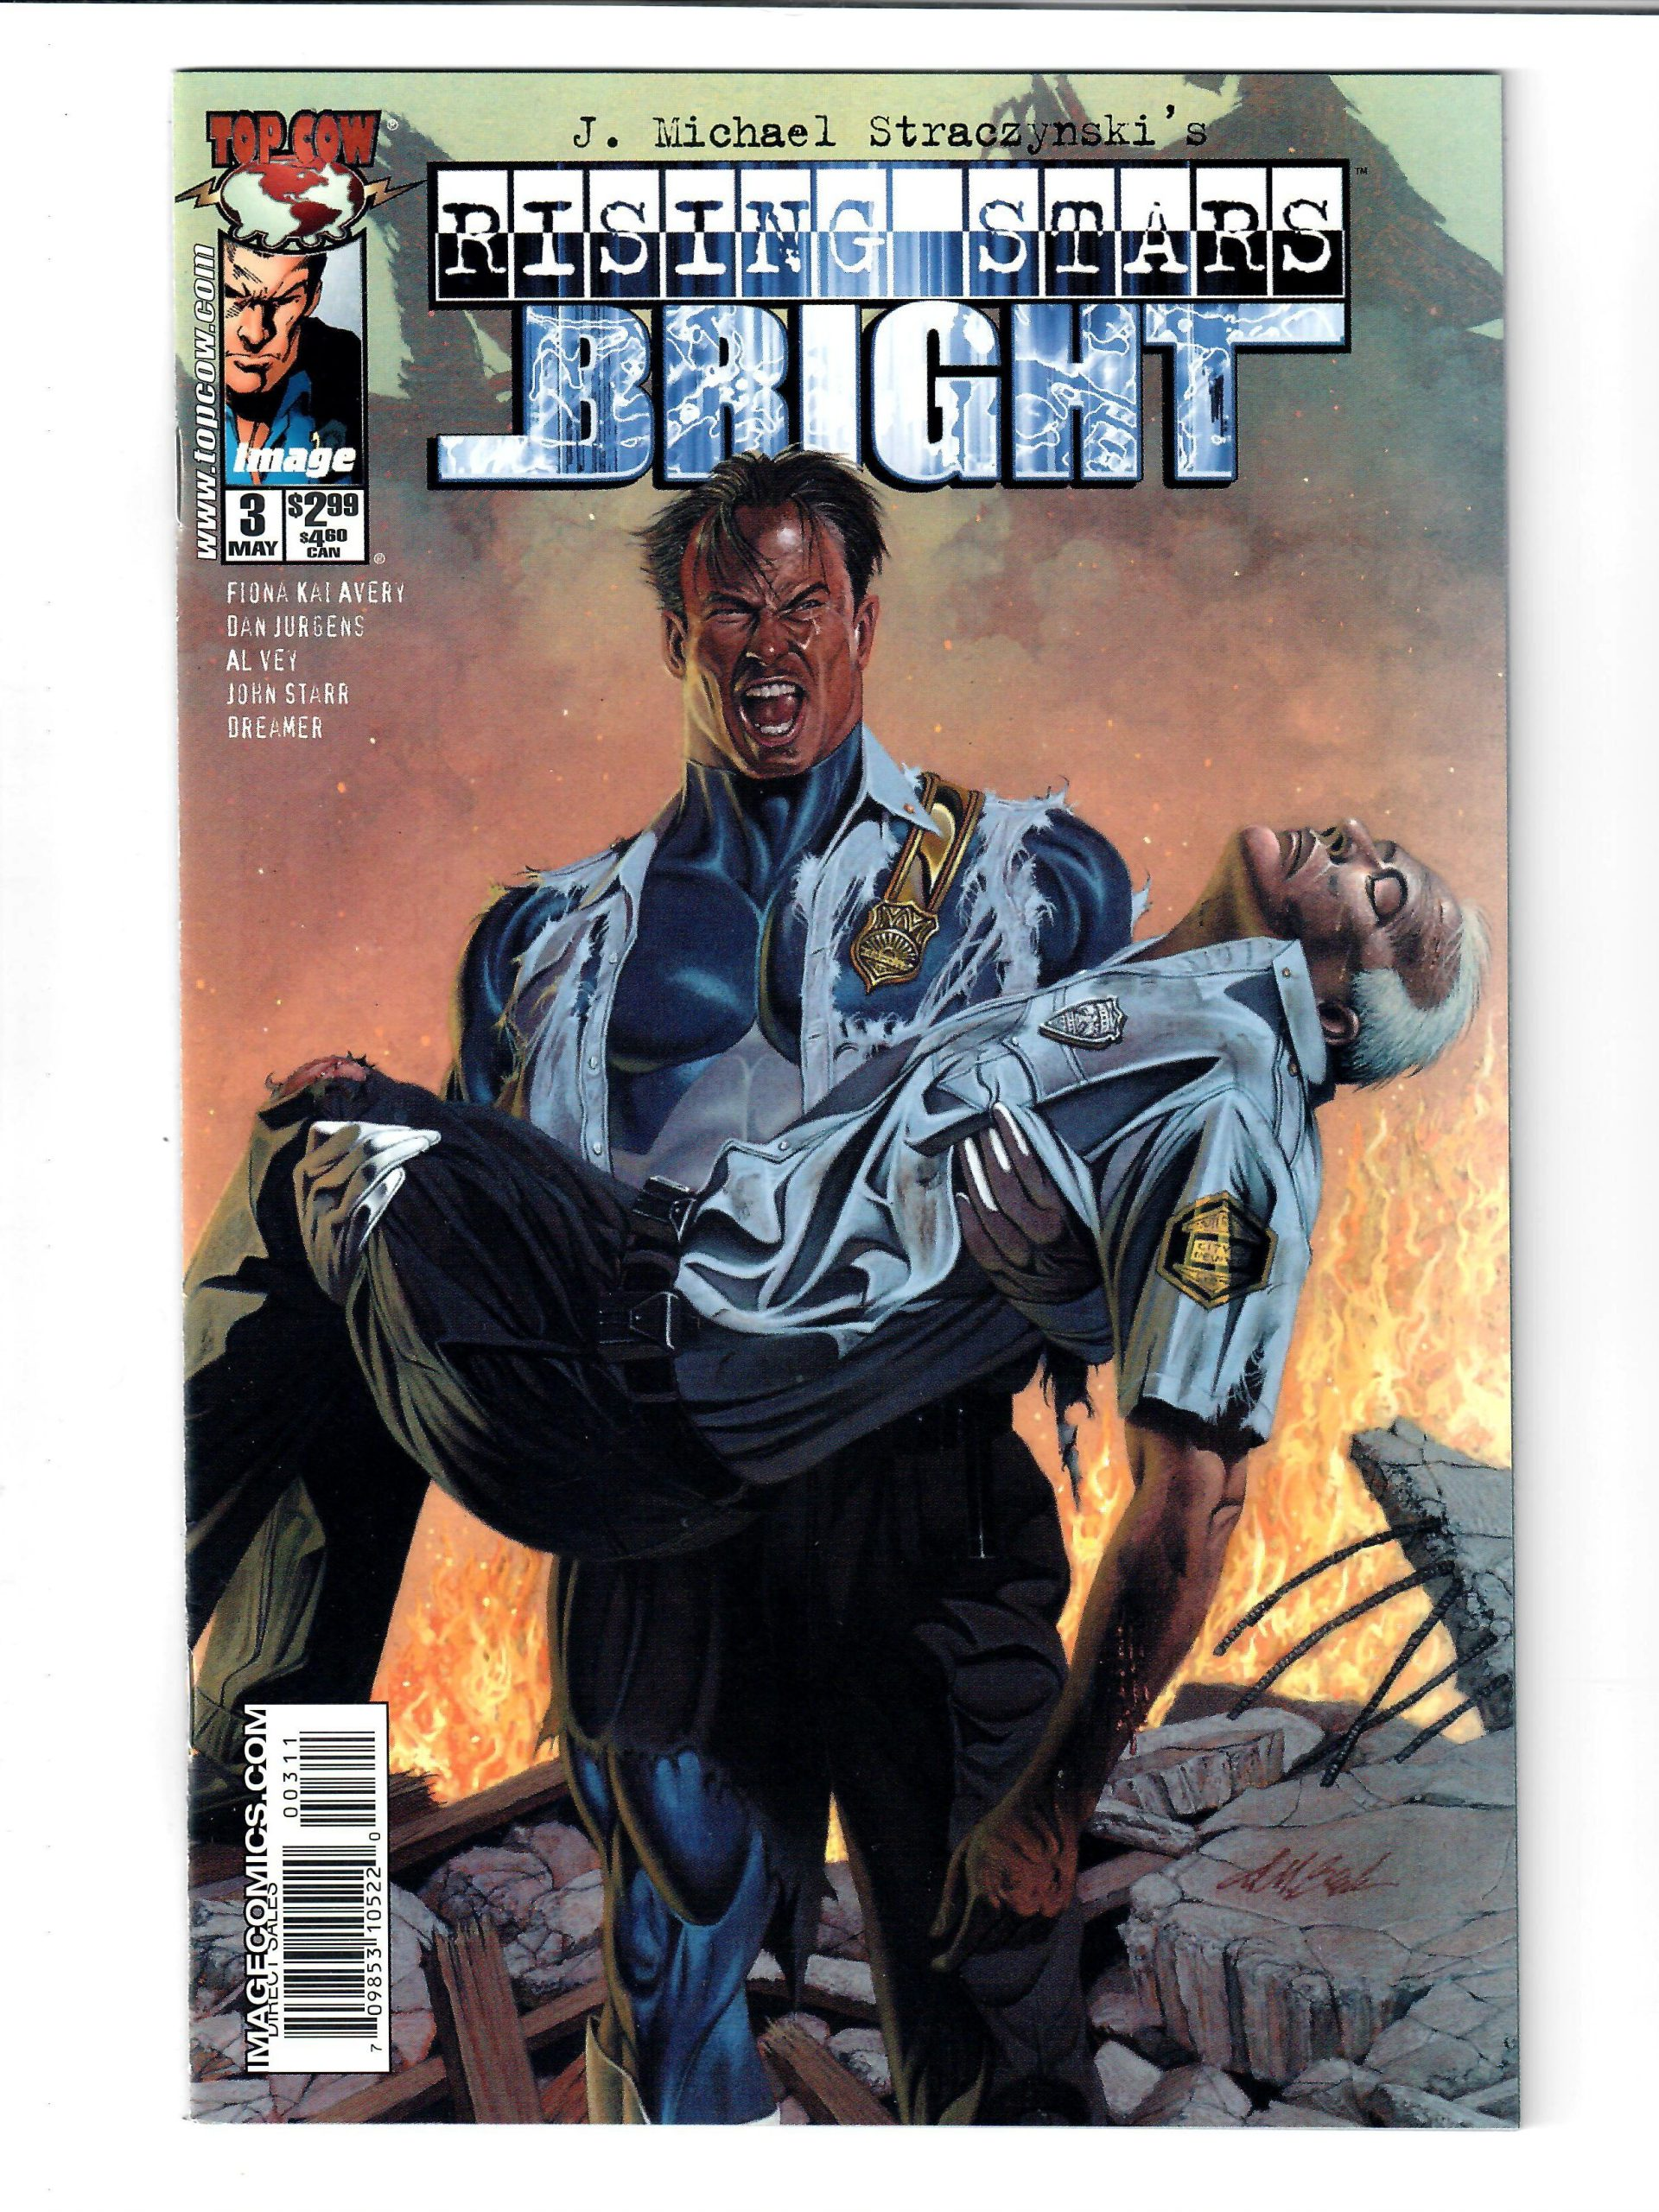 IMAGE COMICS RISING STARS BRIGHT #3 MAY 2003 VG COMIC #149836-D-2